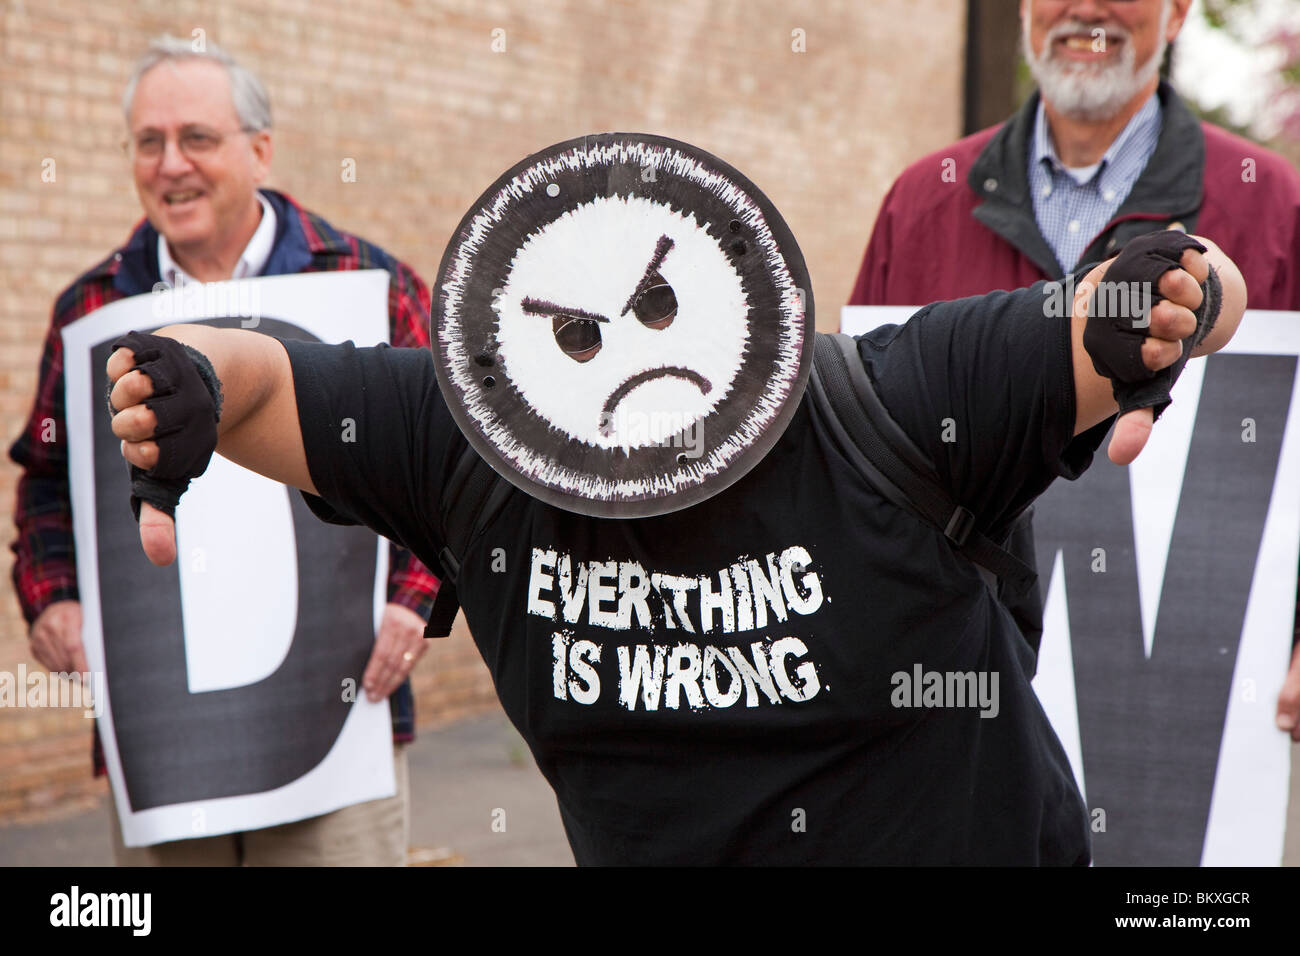 Dearborn, Michigan - A man on a labor picket line wears an unhappy face and the slogan 'Everything is Wrong.' - Stock Image